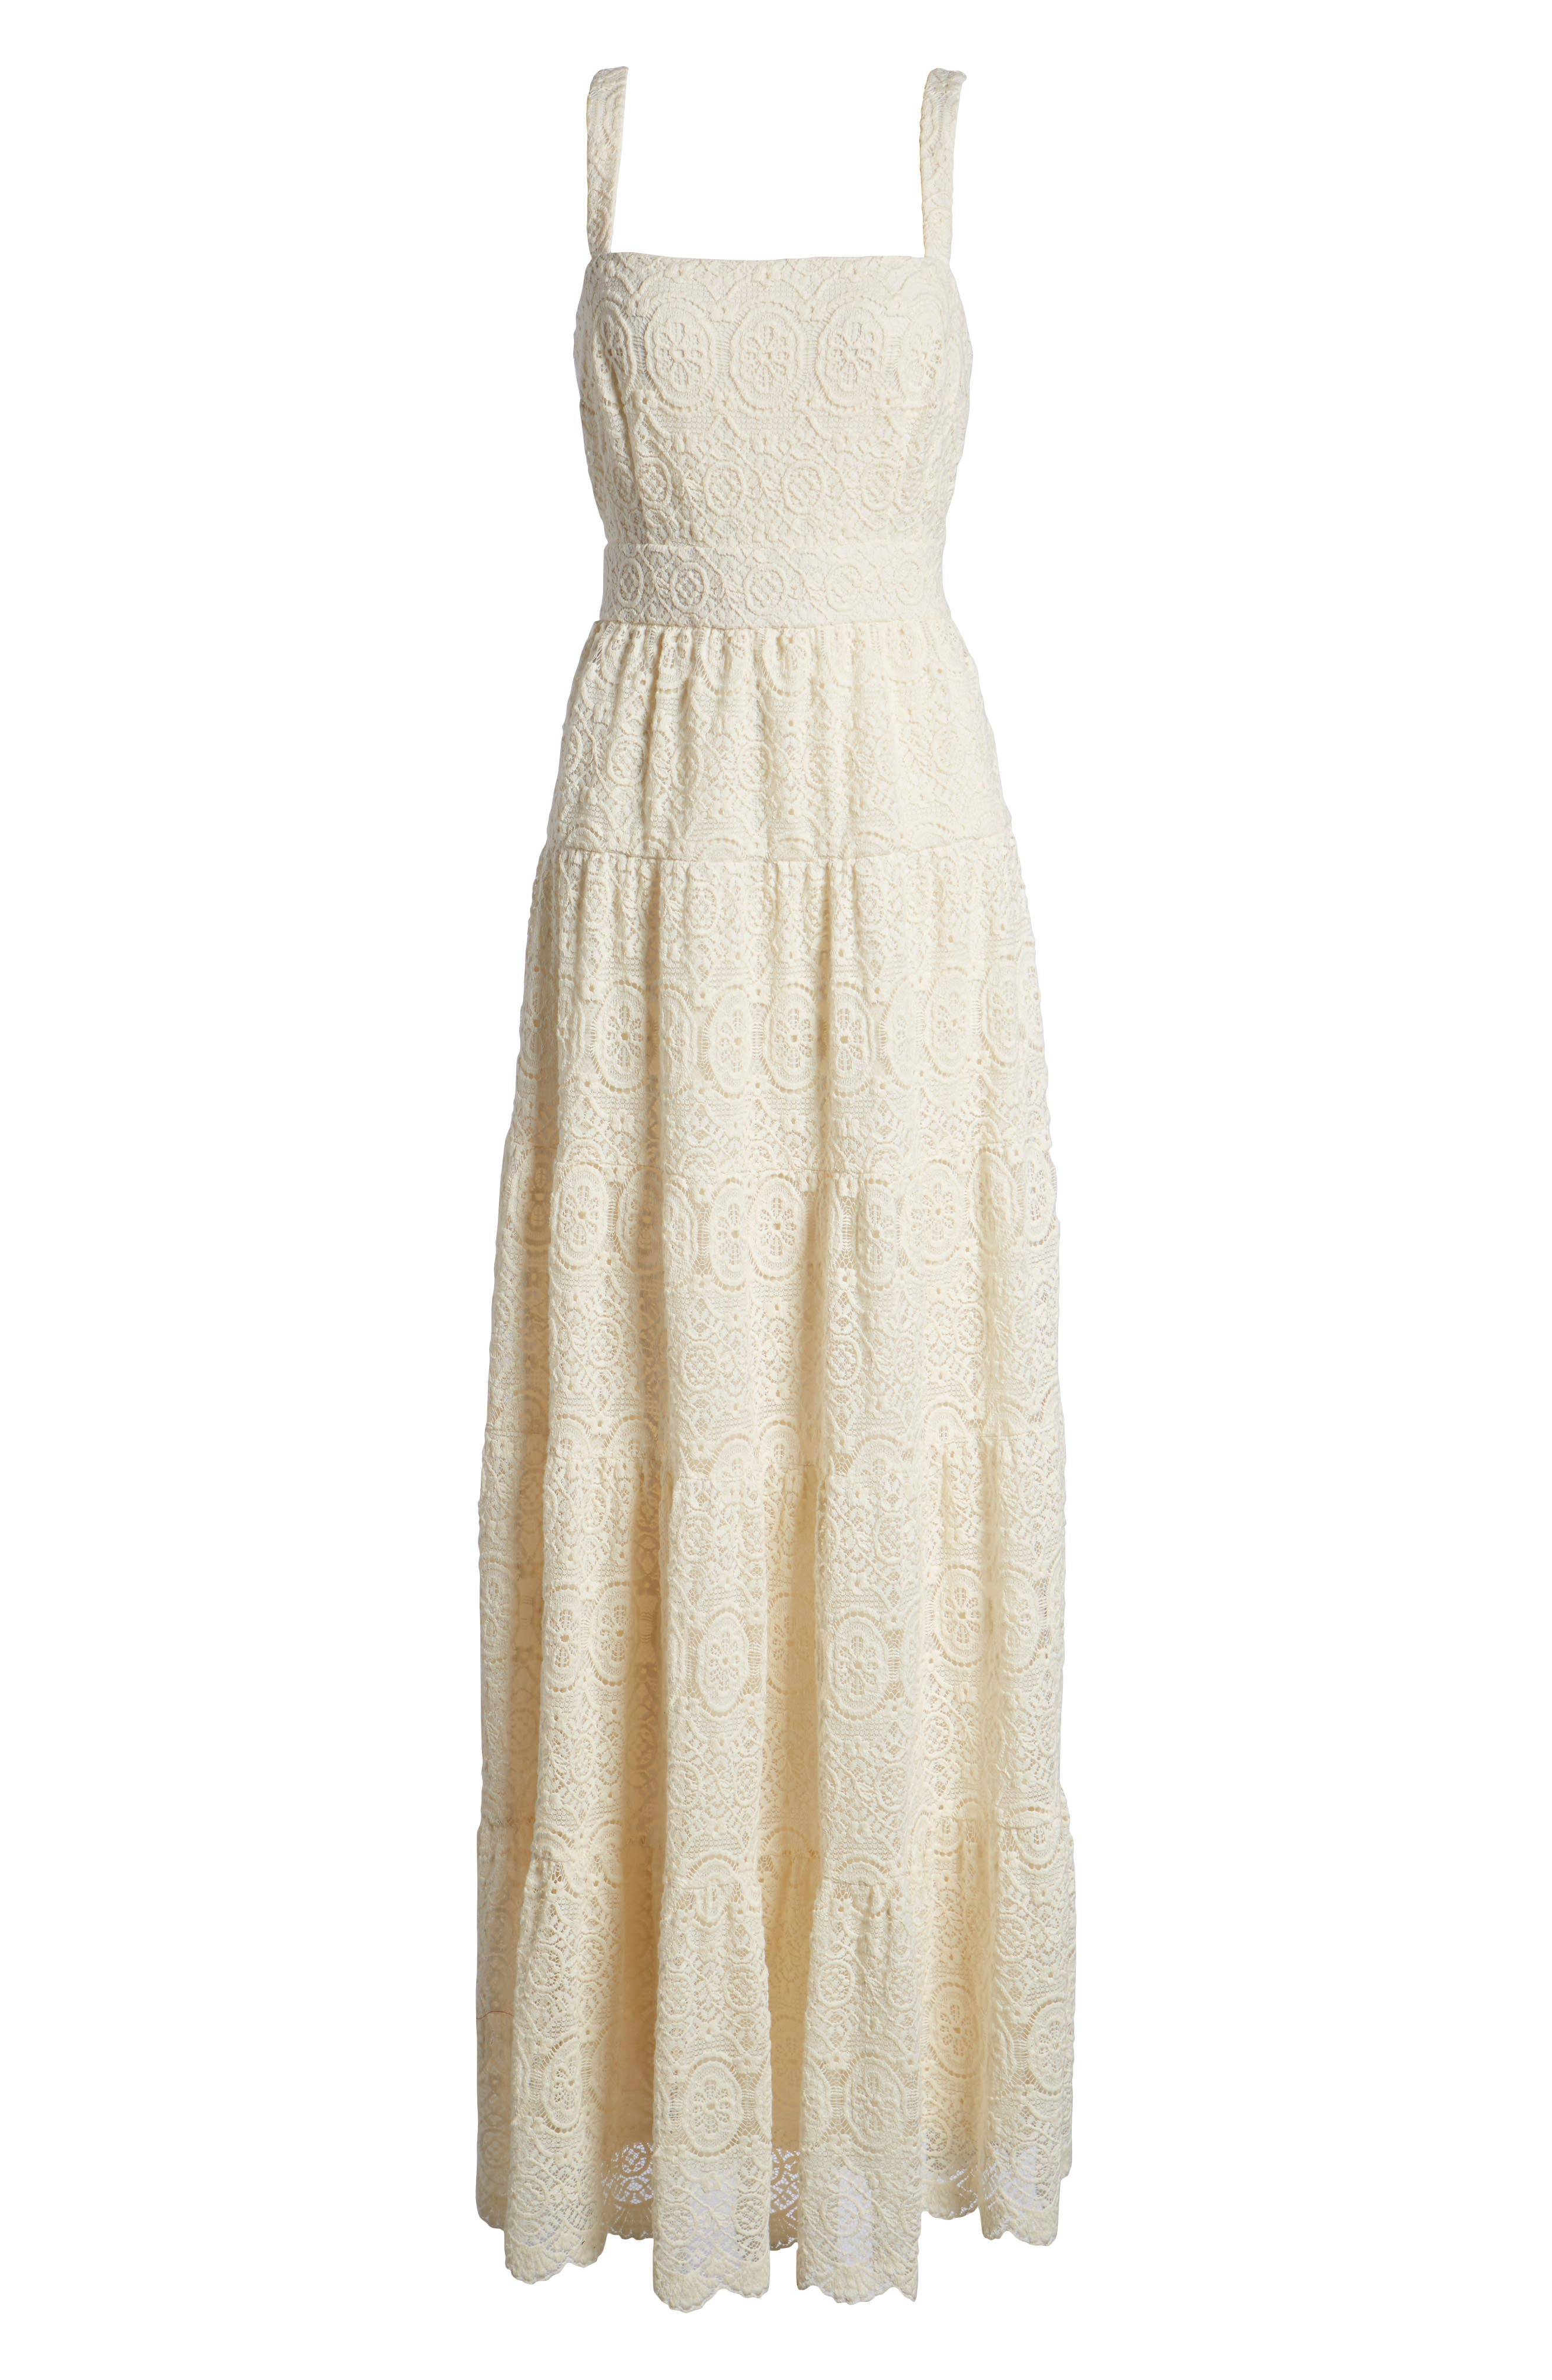 Tiered Lace Maxi Dress,                             Alternate thumbnail 7, color,                             Ivory